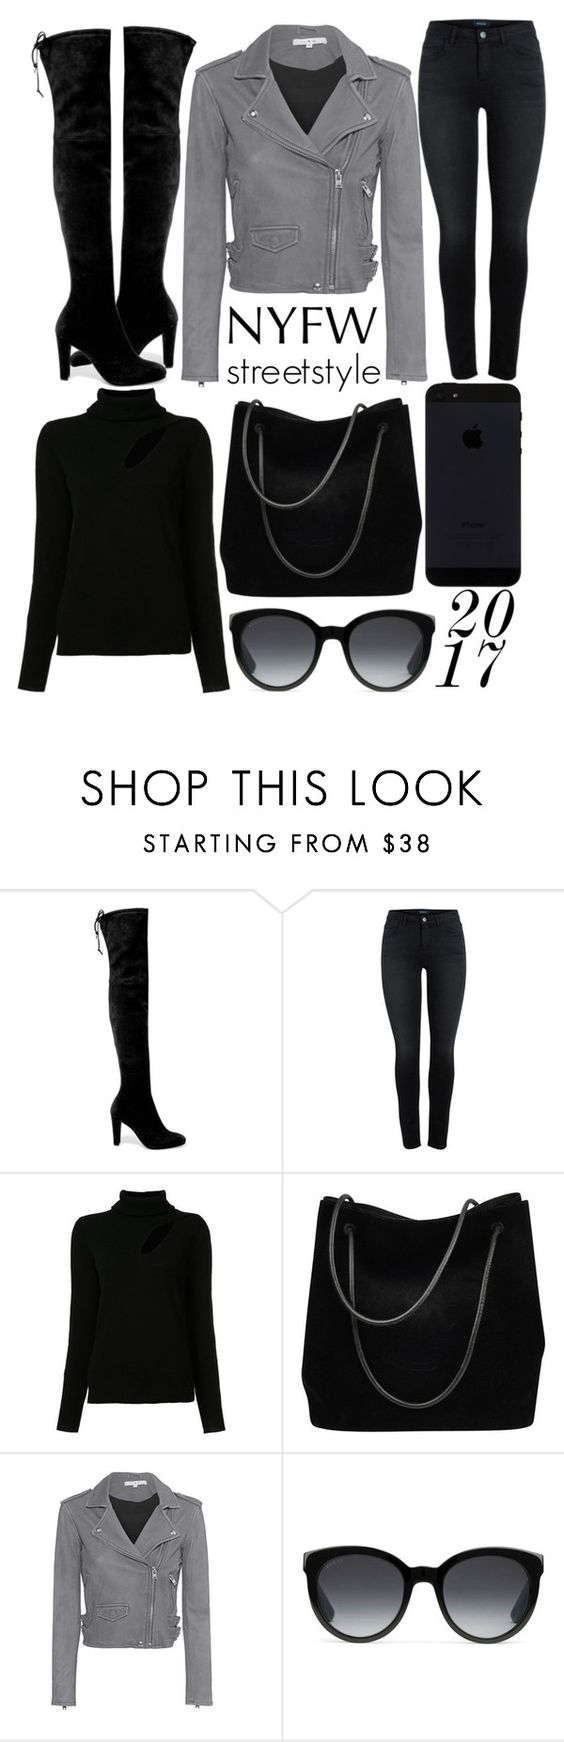 """""""nyfw: street style"""" by j-n-a ❤ liked on Polyvore featuring Stuart Weitzman, A.L.C., Gucci, IRO, StreetStyle, NYFW, Newyork and fashionWeek"""